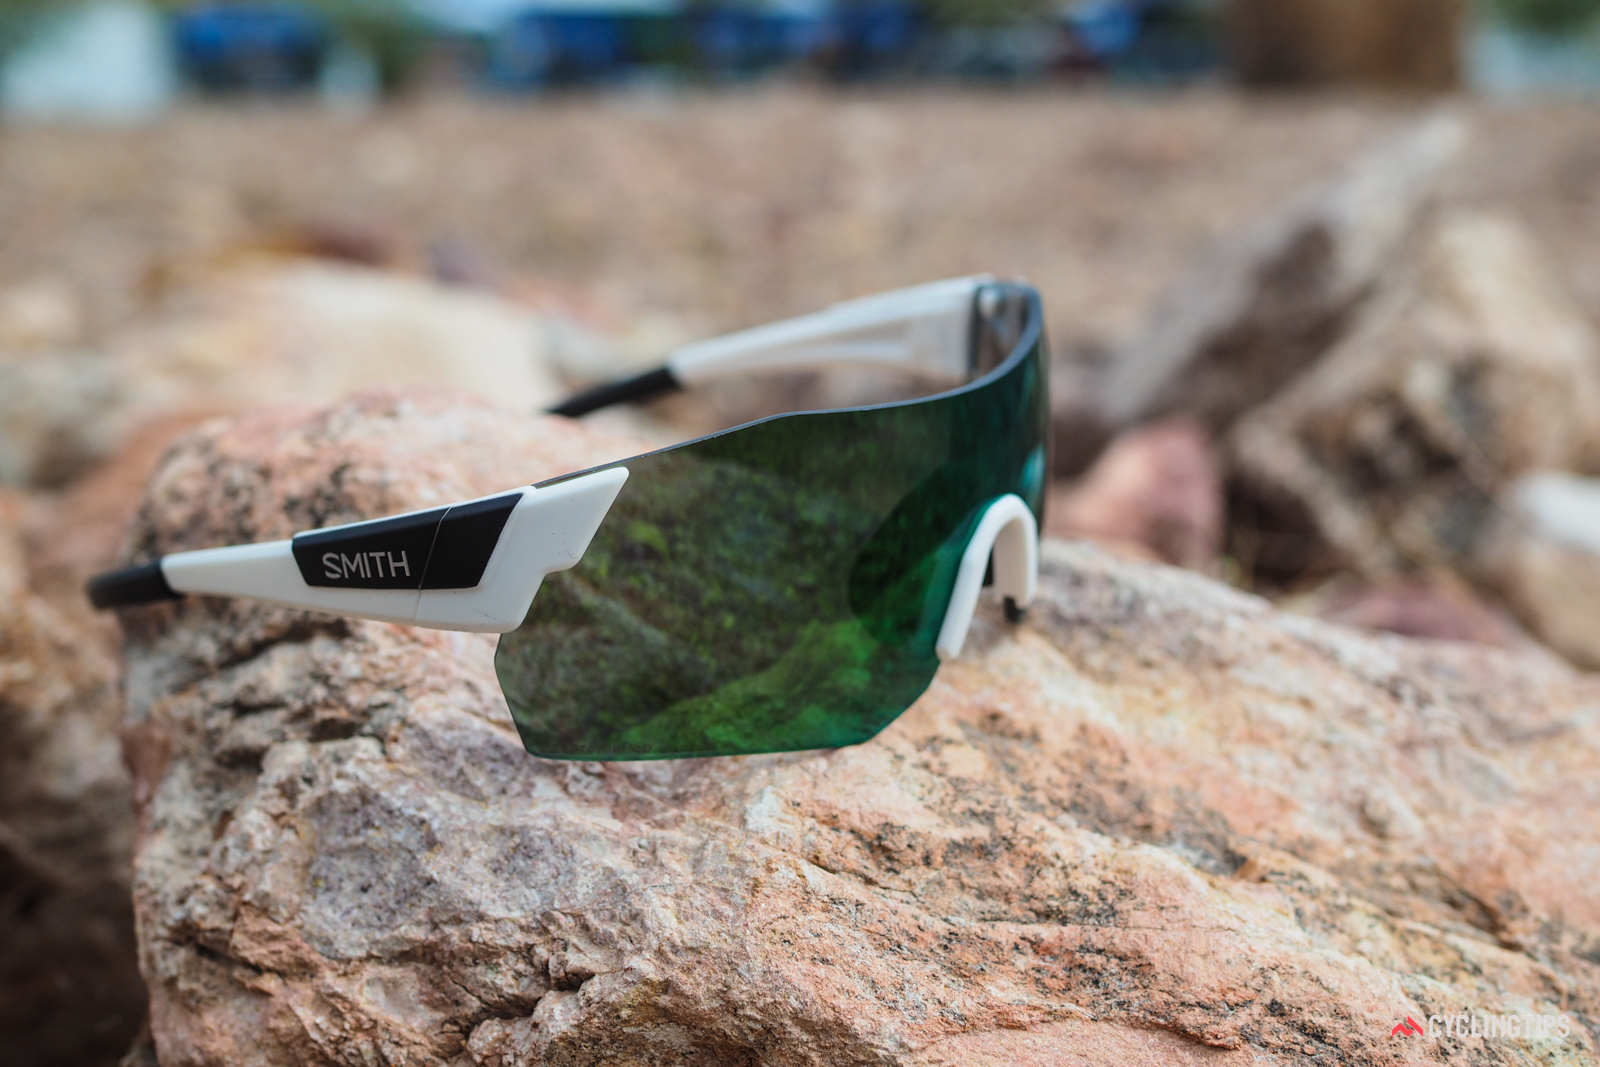 Smith's new ChromaPop lens tints are said to more specifically block and transmit specific wavelengths of light for enhanced contrast and clarity. The concept is similar to what Oakley does with its Prizm lenses.